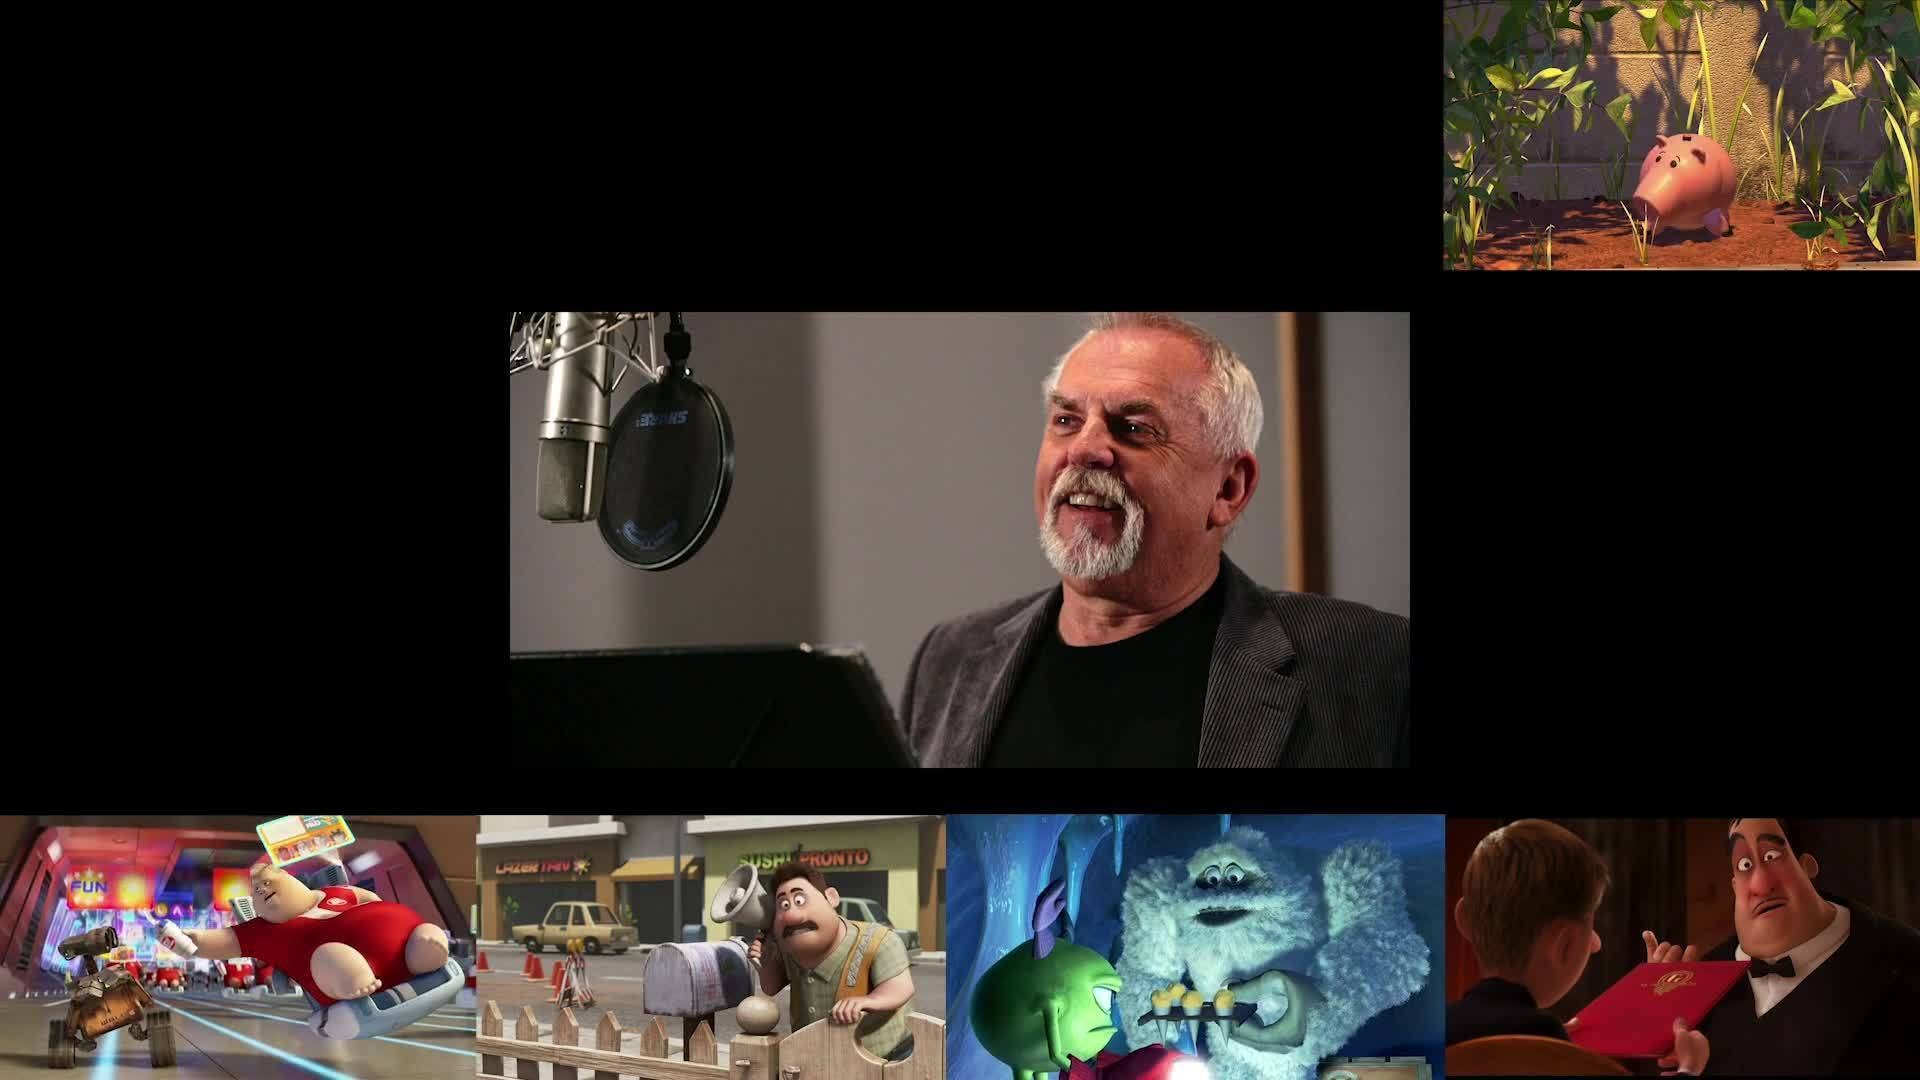 John Ratzenberger In Every Single Disney Pixar Film - Oh My Disney